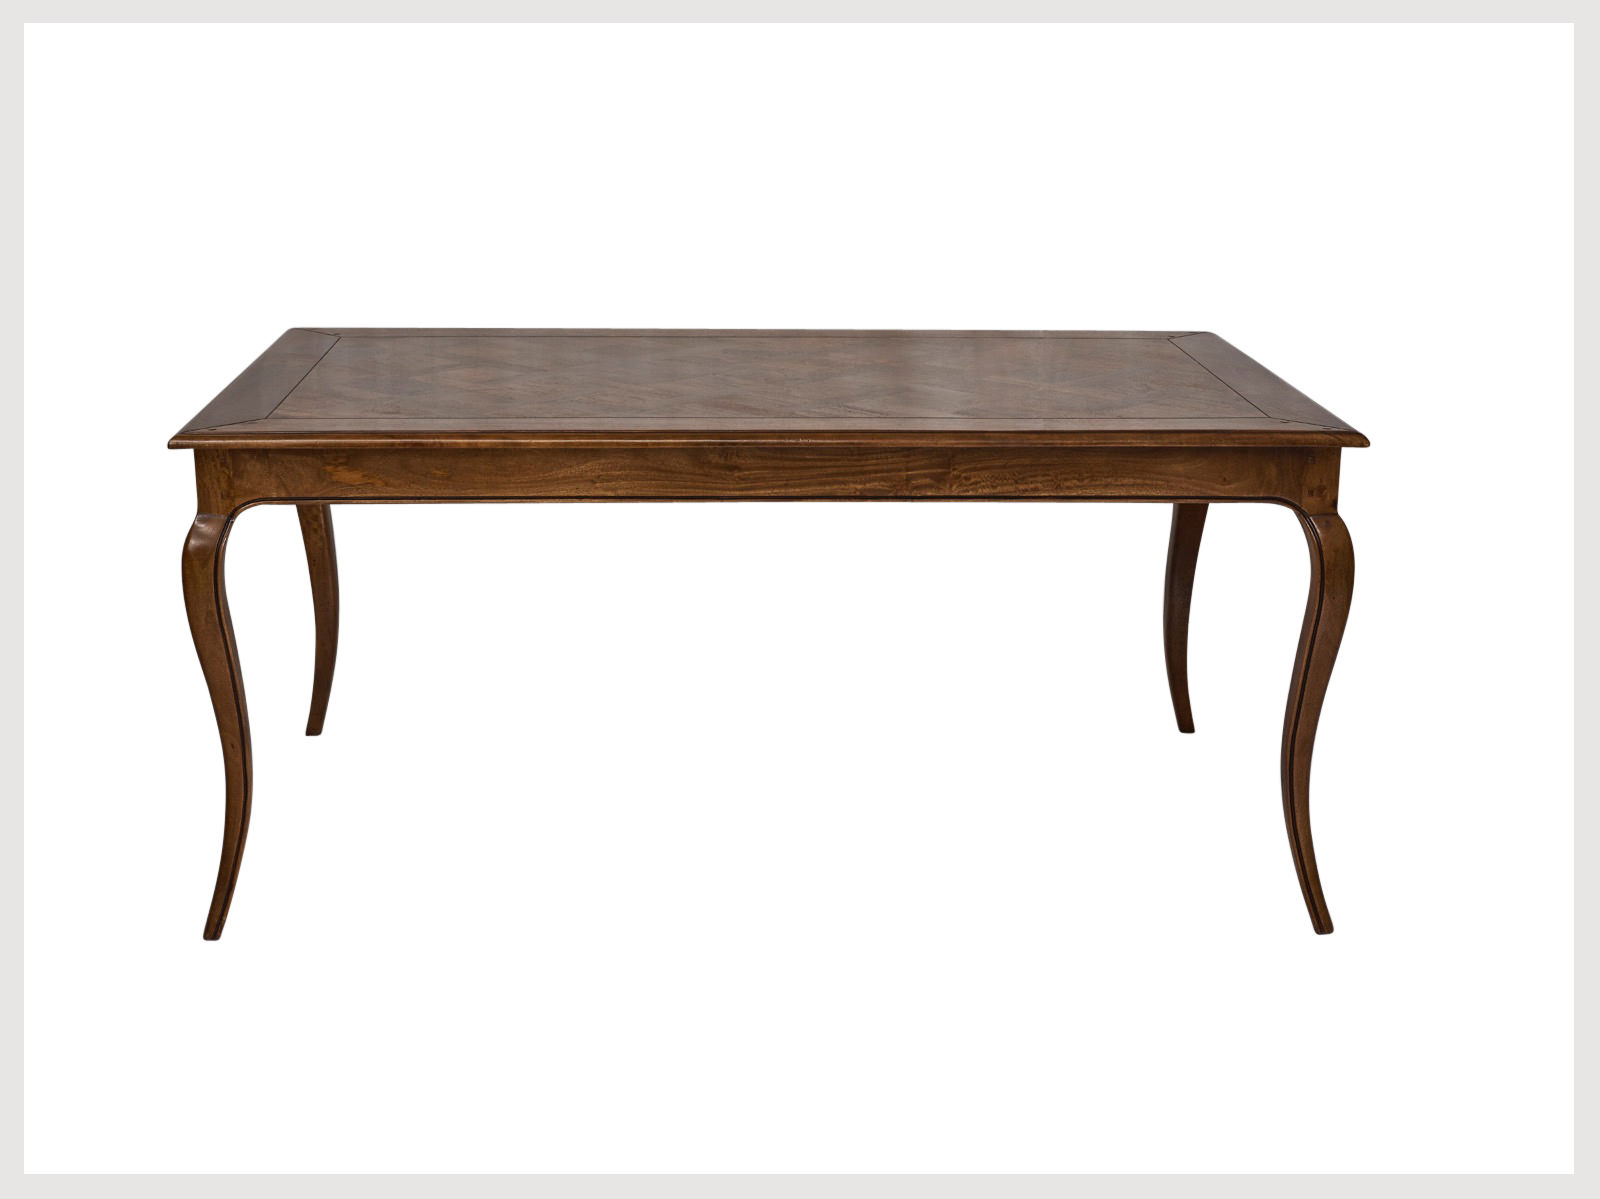 French Provincial Style 6 8 Seater Dining Table In